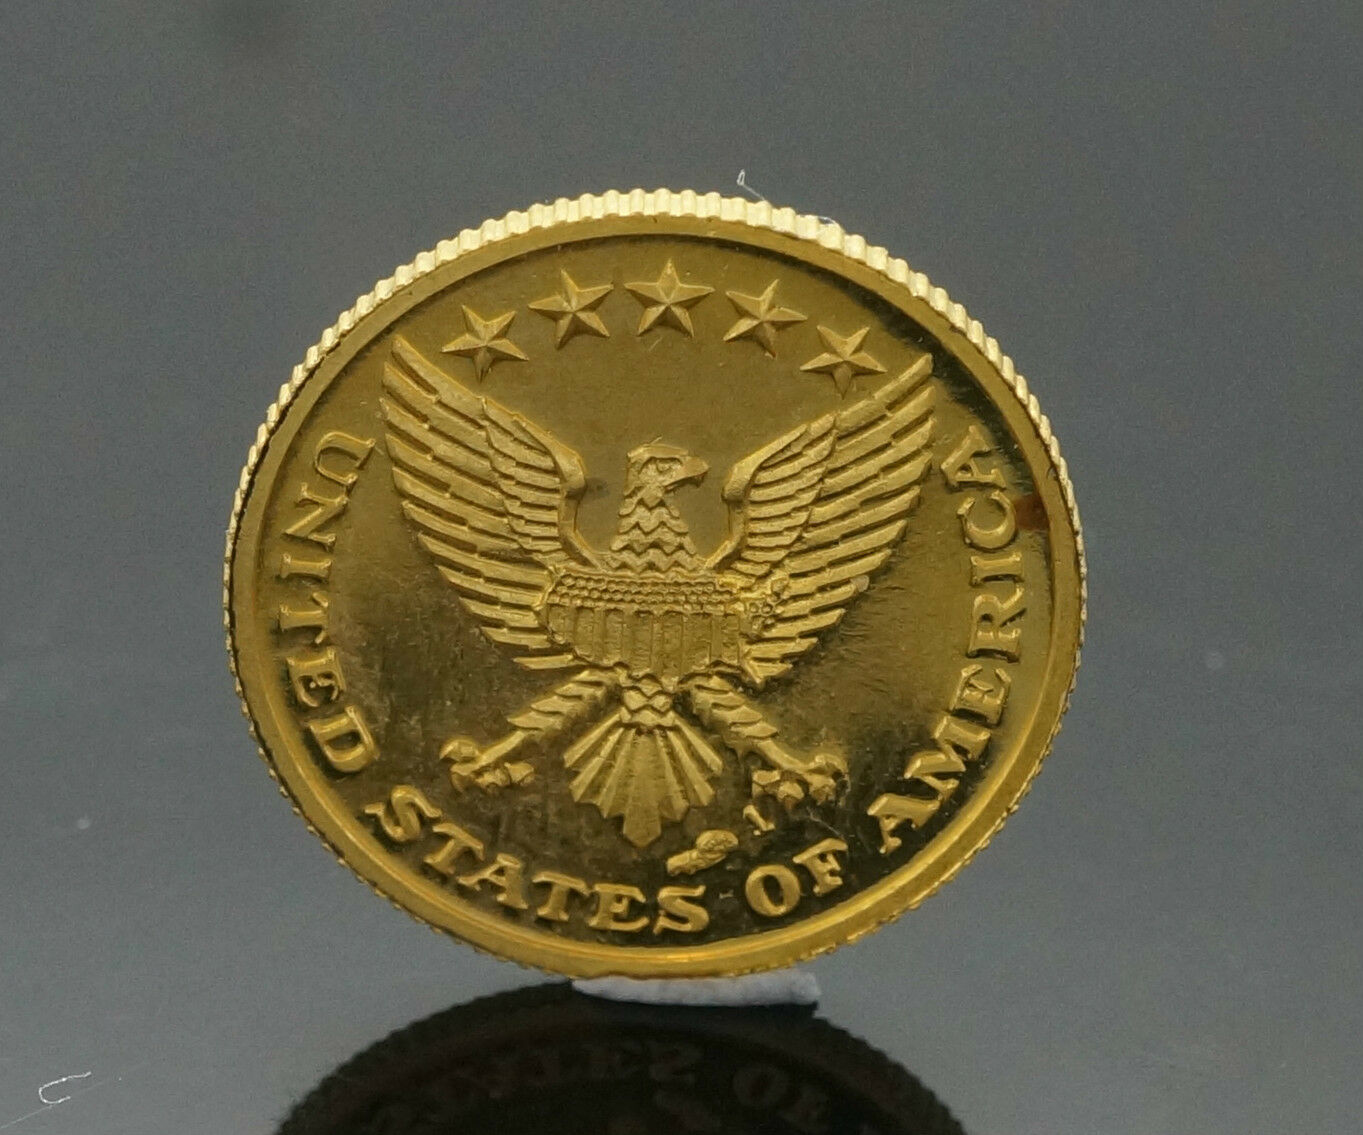 24carat Gold John F Kennedy Commemorative Coin In